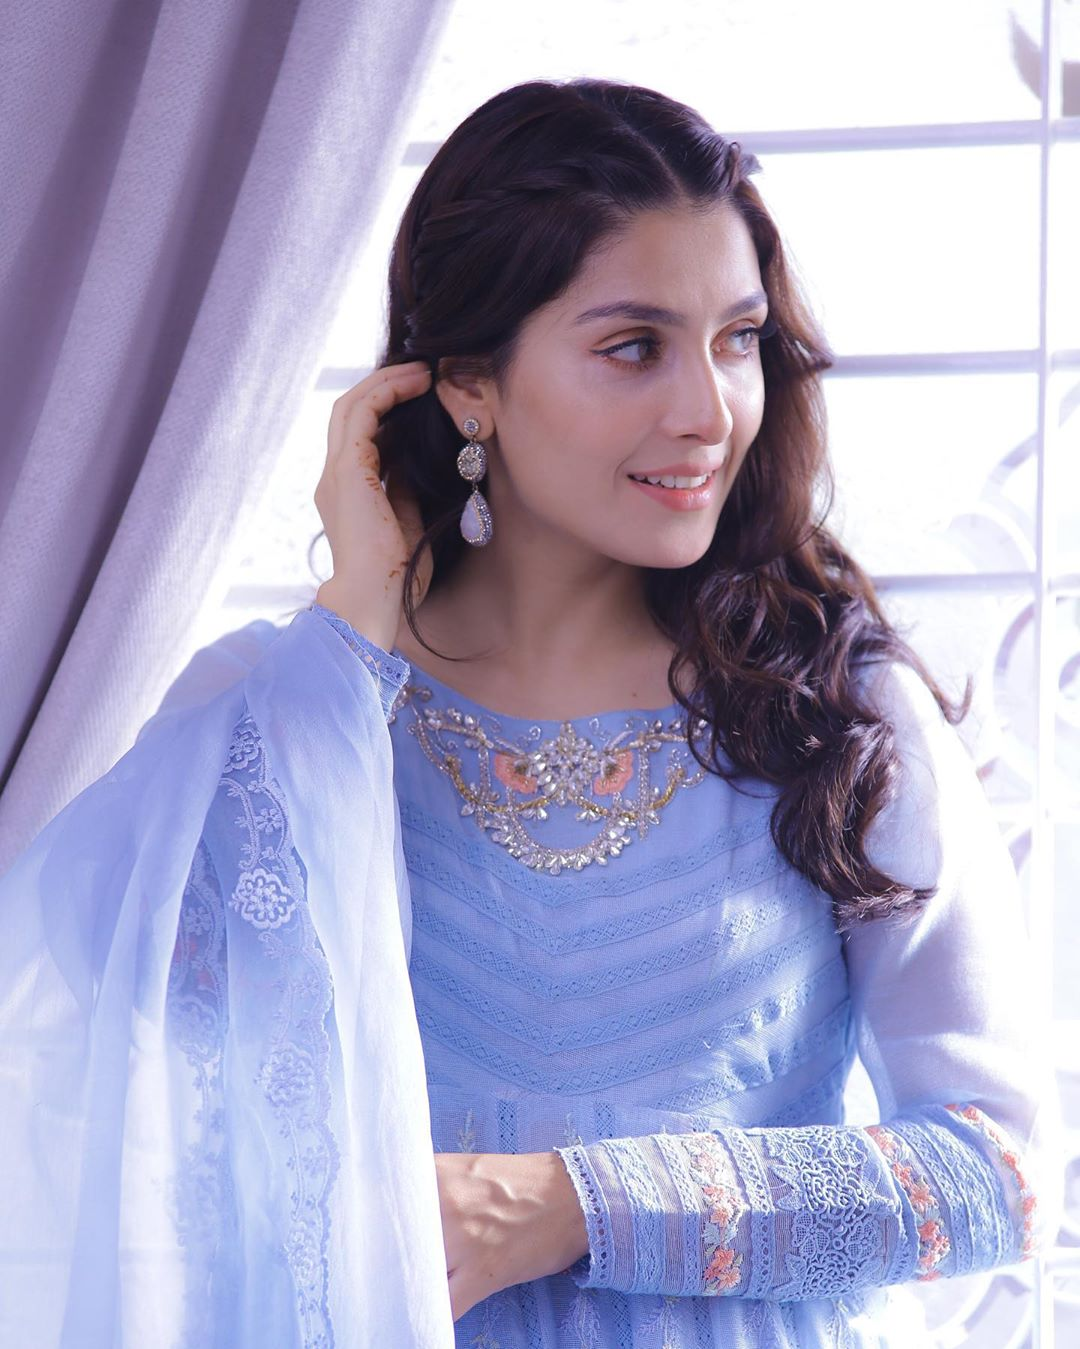 Ayeza Khan Beautiful Pictures from Her Recent Photo Shoots